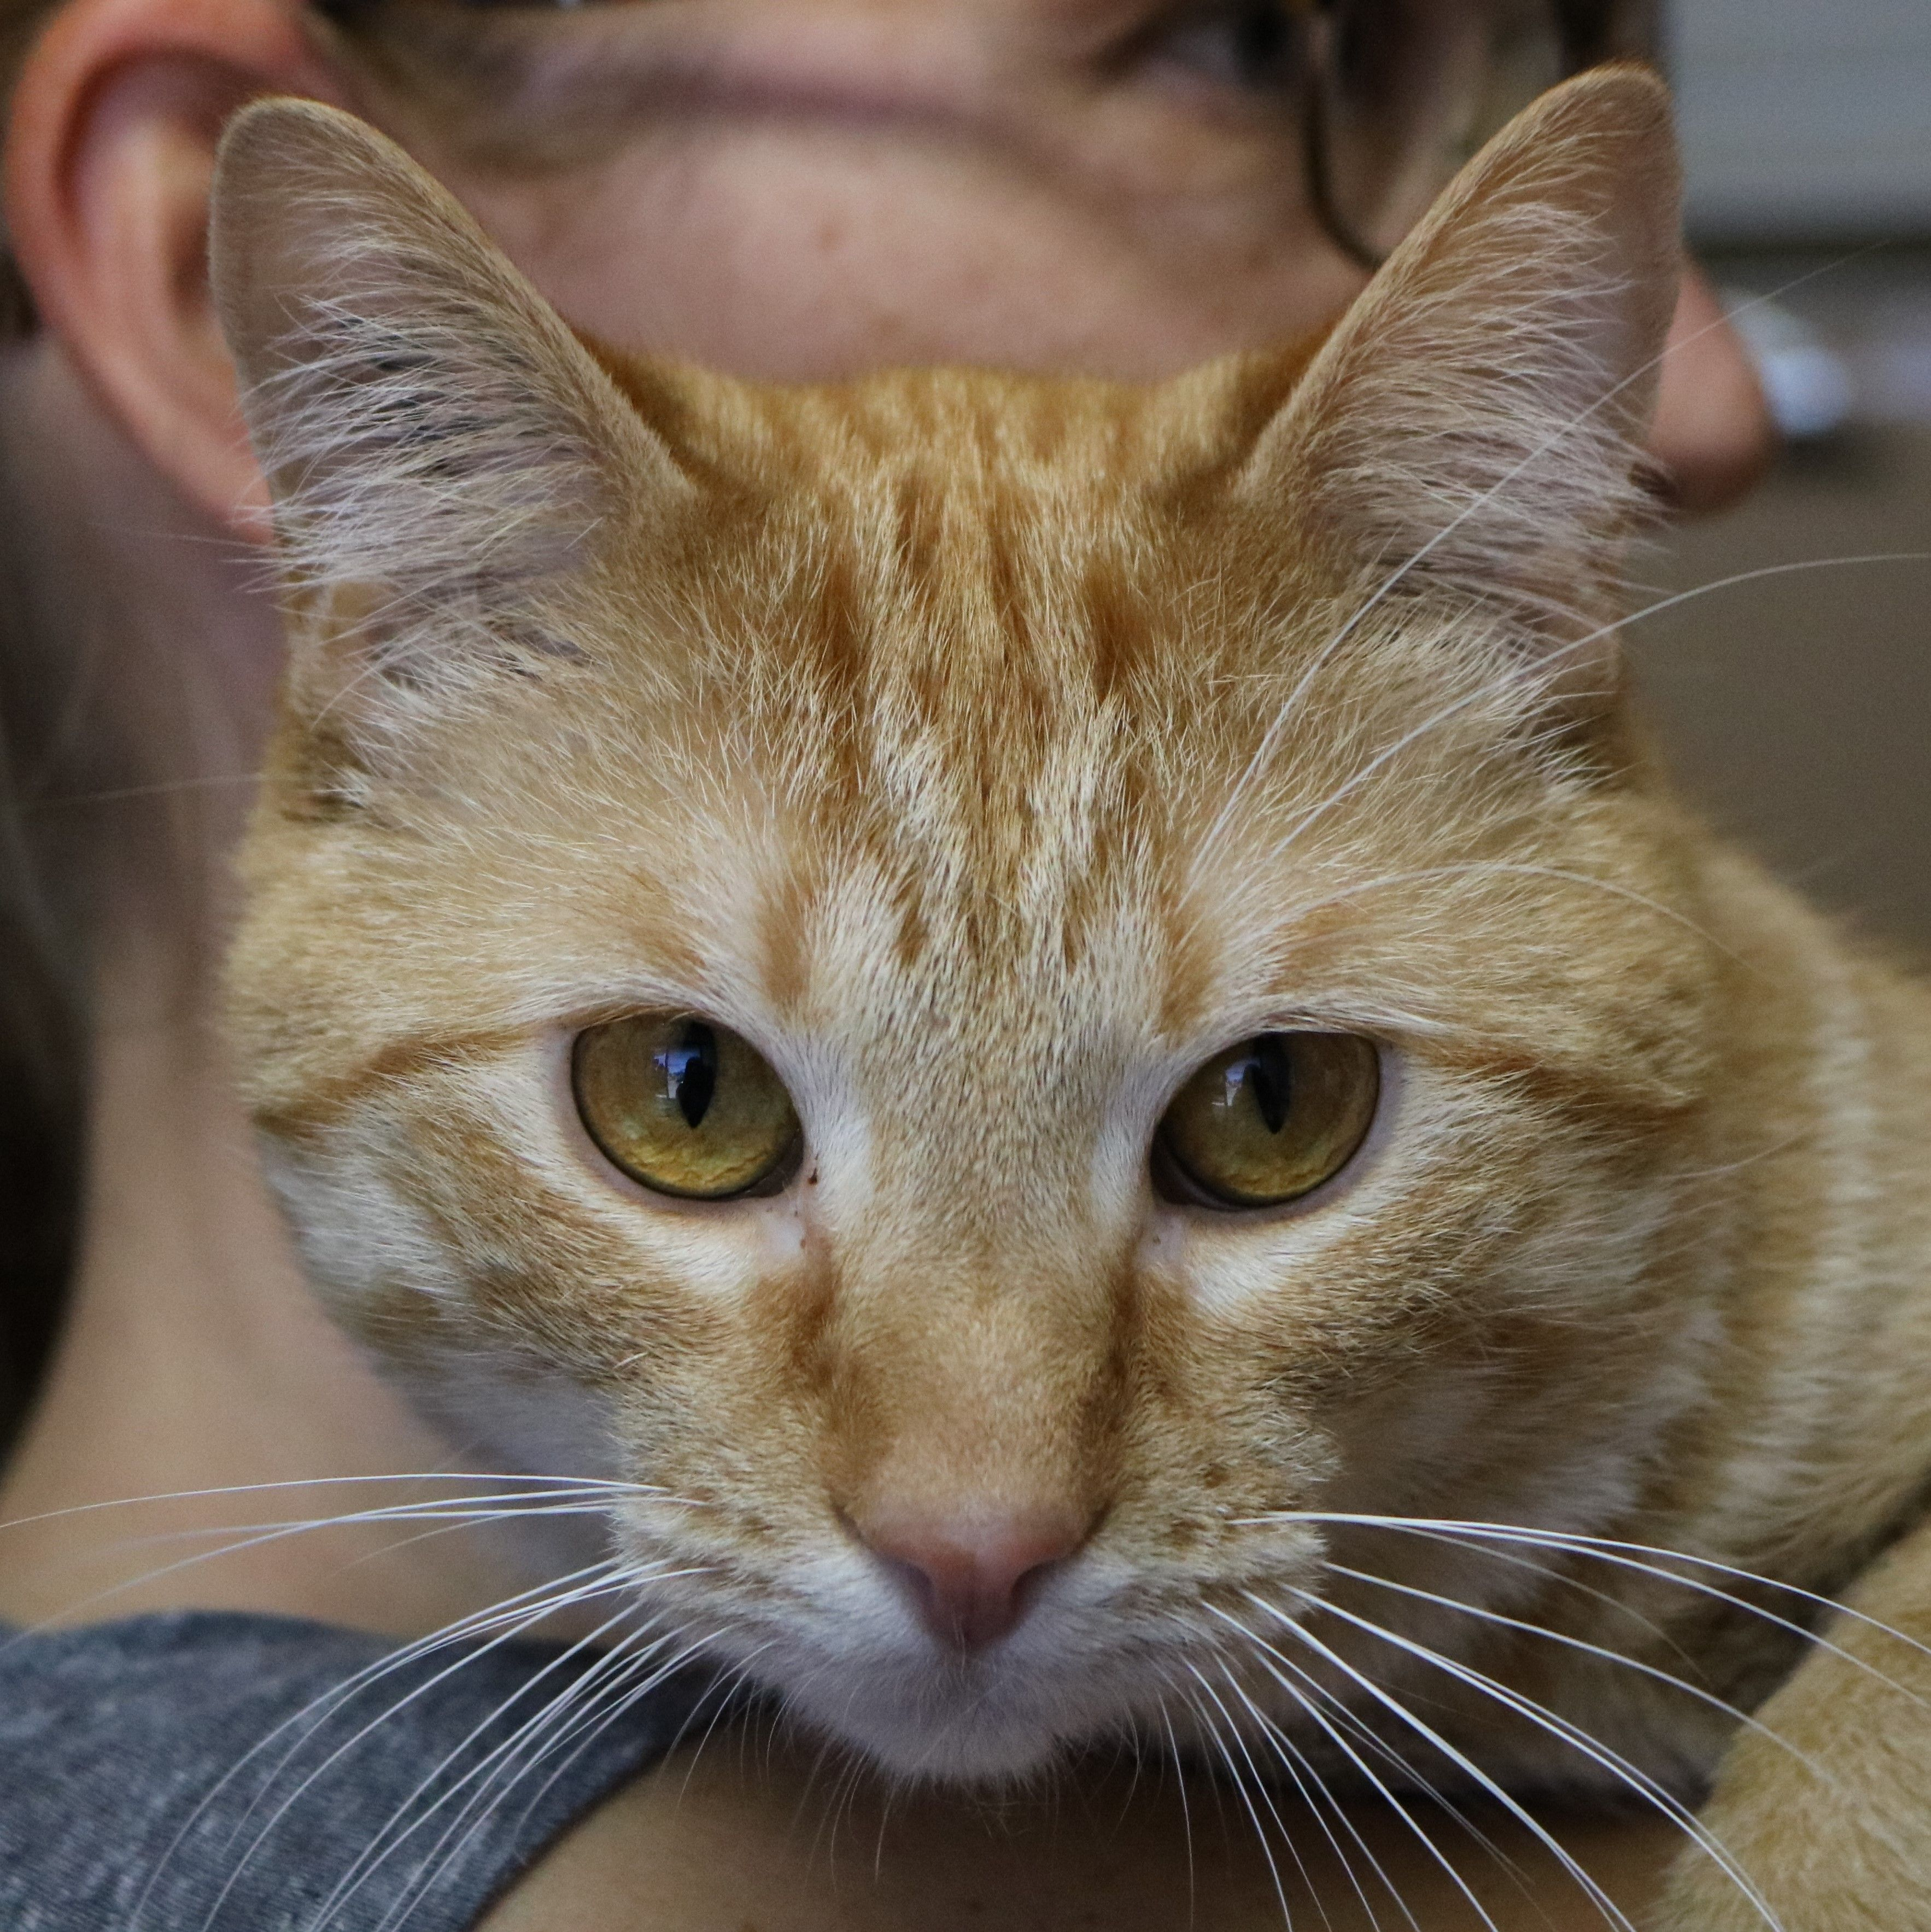 You can visit Totem at Pet Valu in Sunridge, he is a